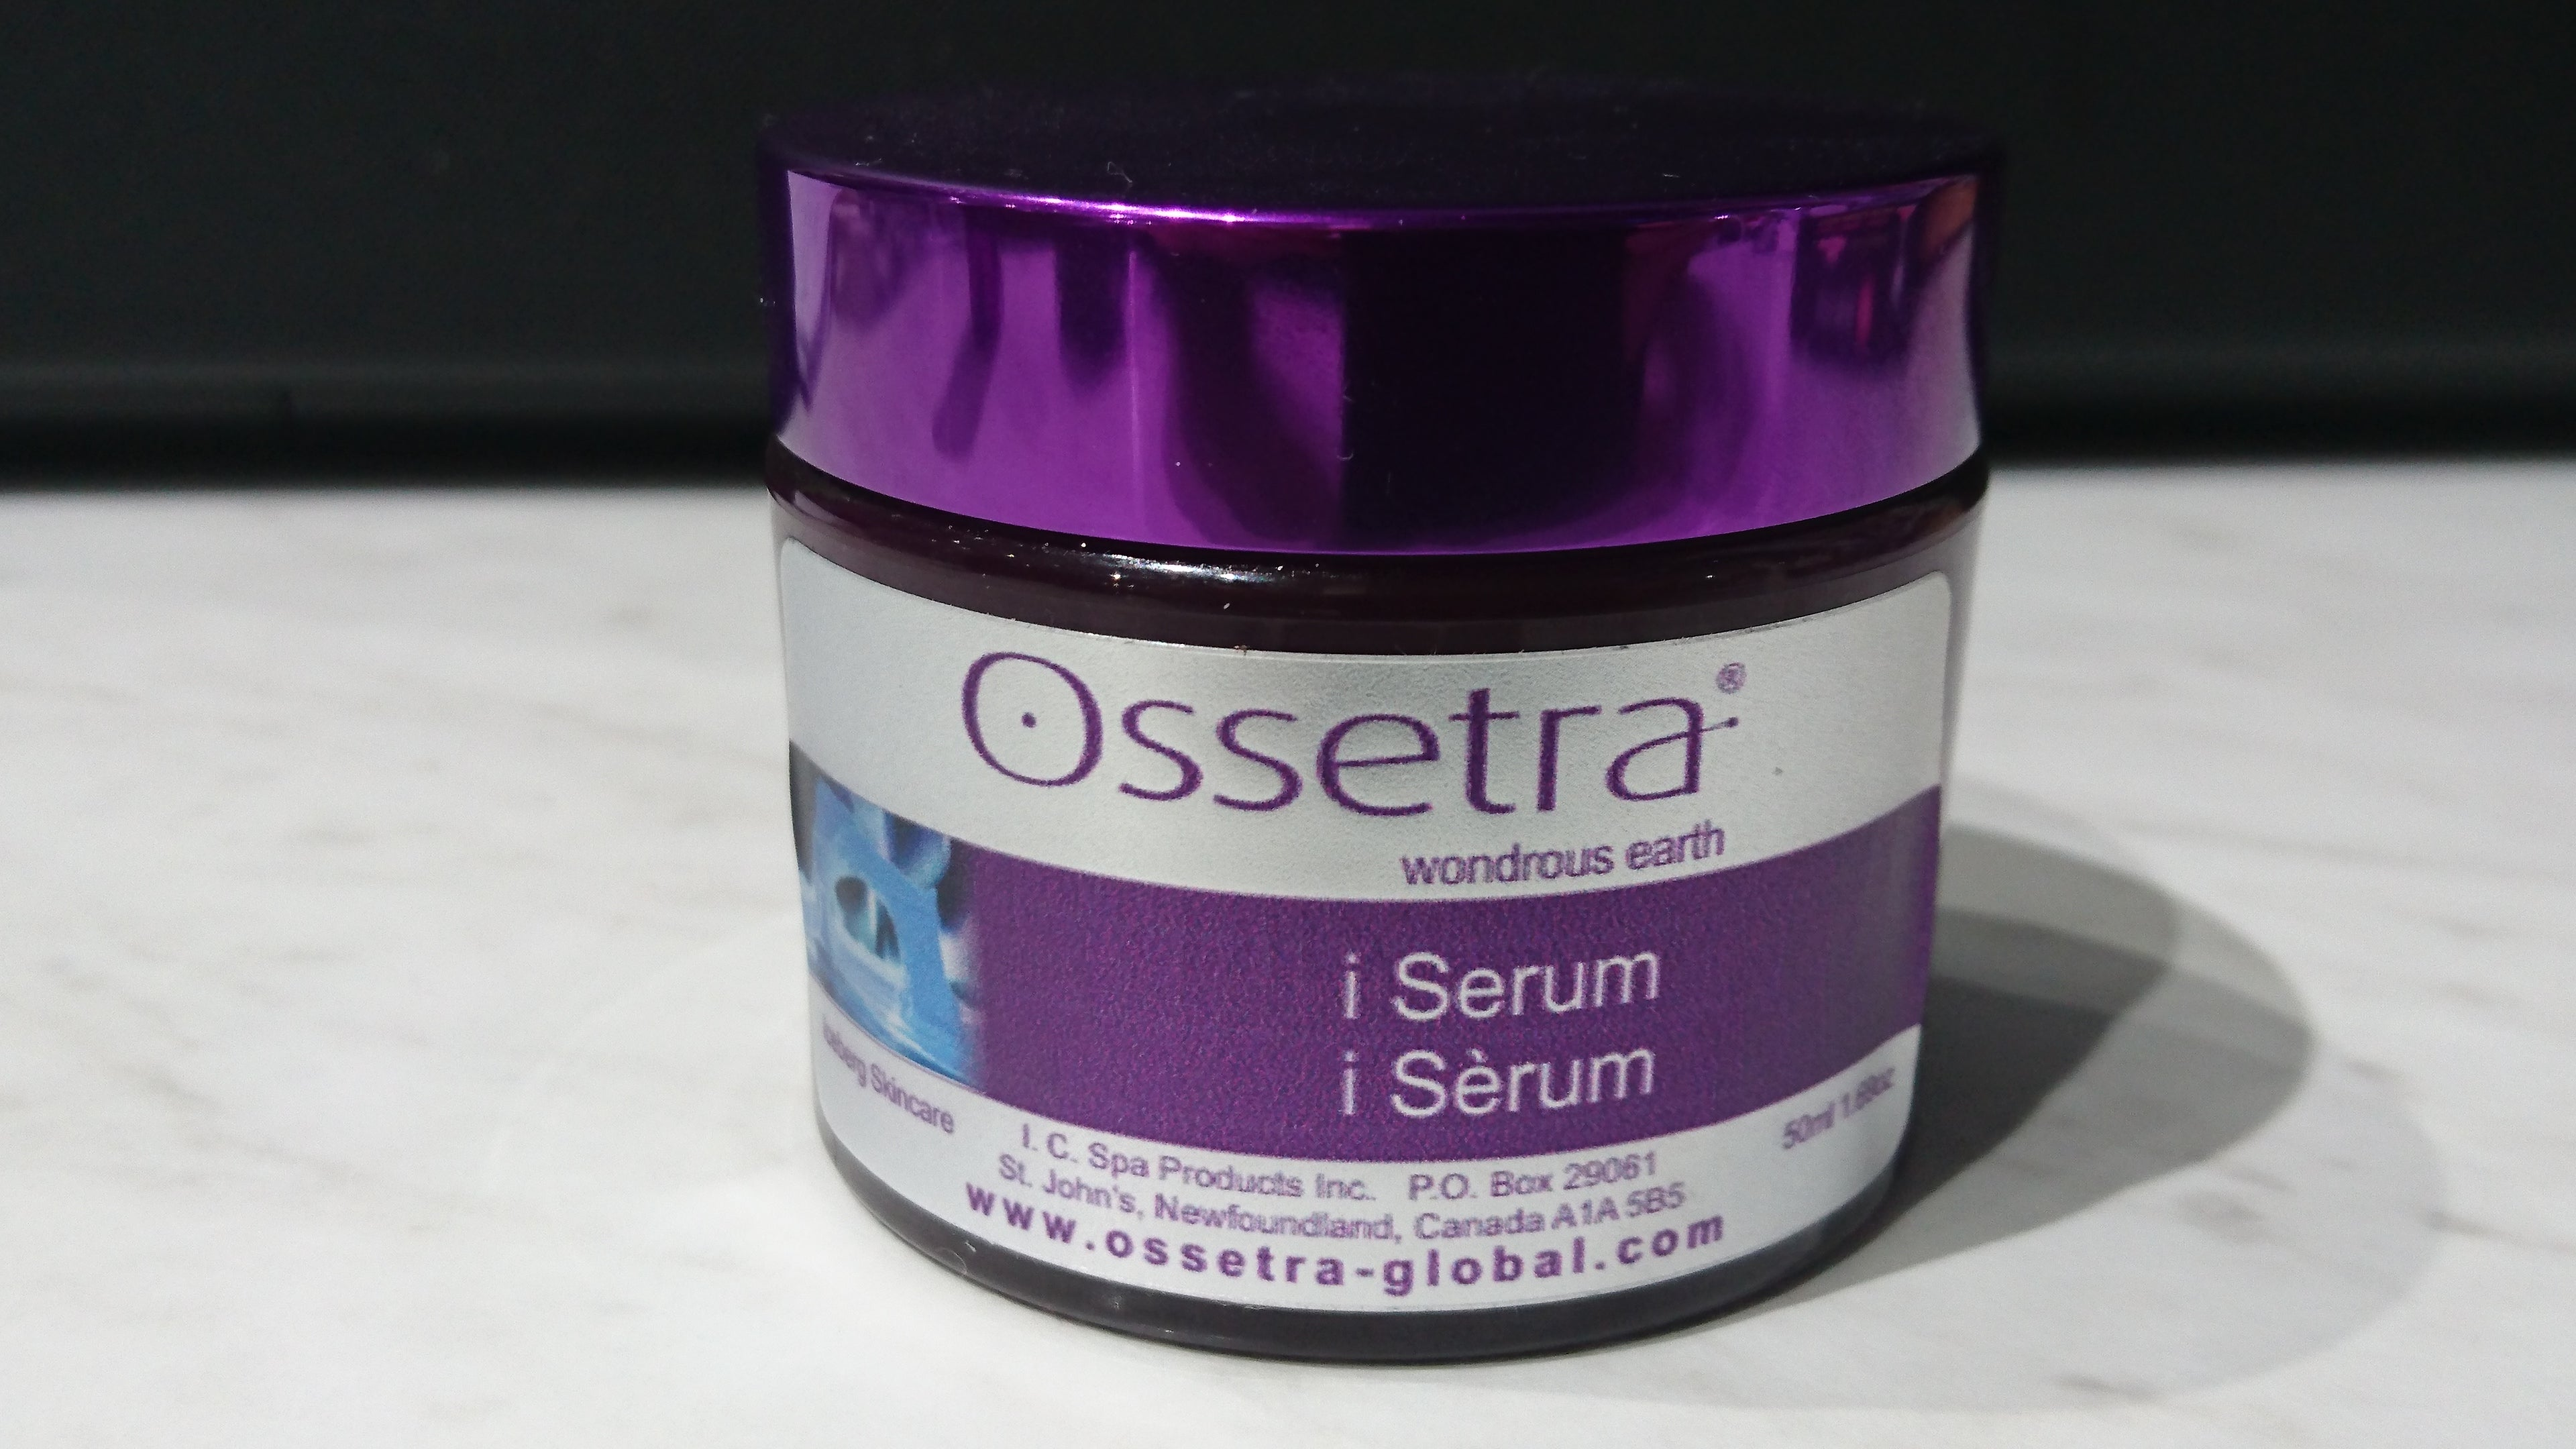 Ossetra Iceberg Water Facial Care